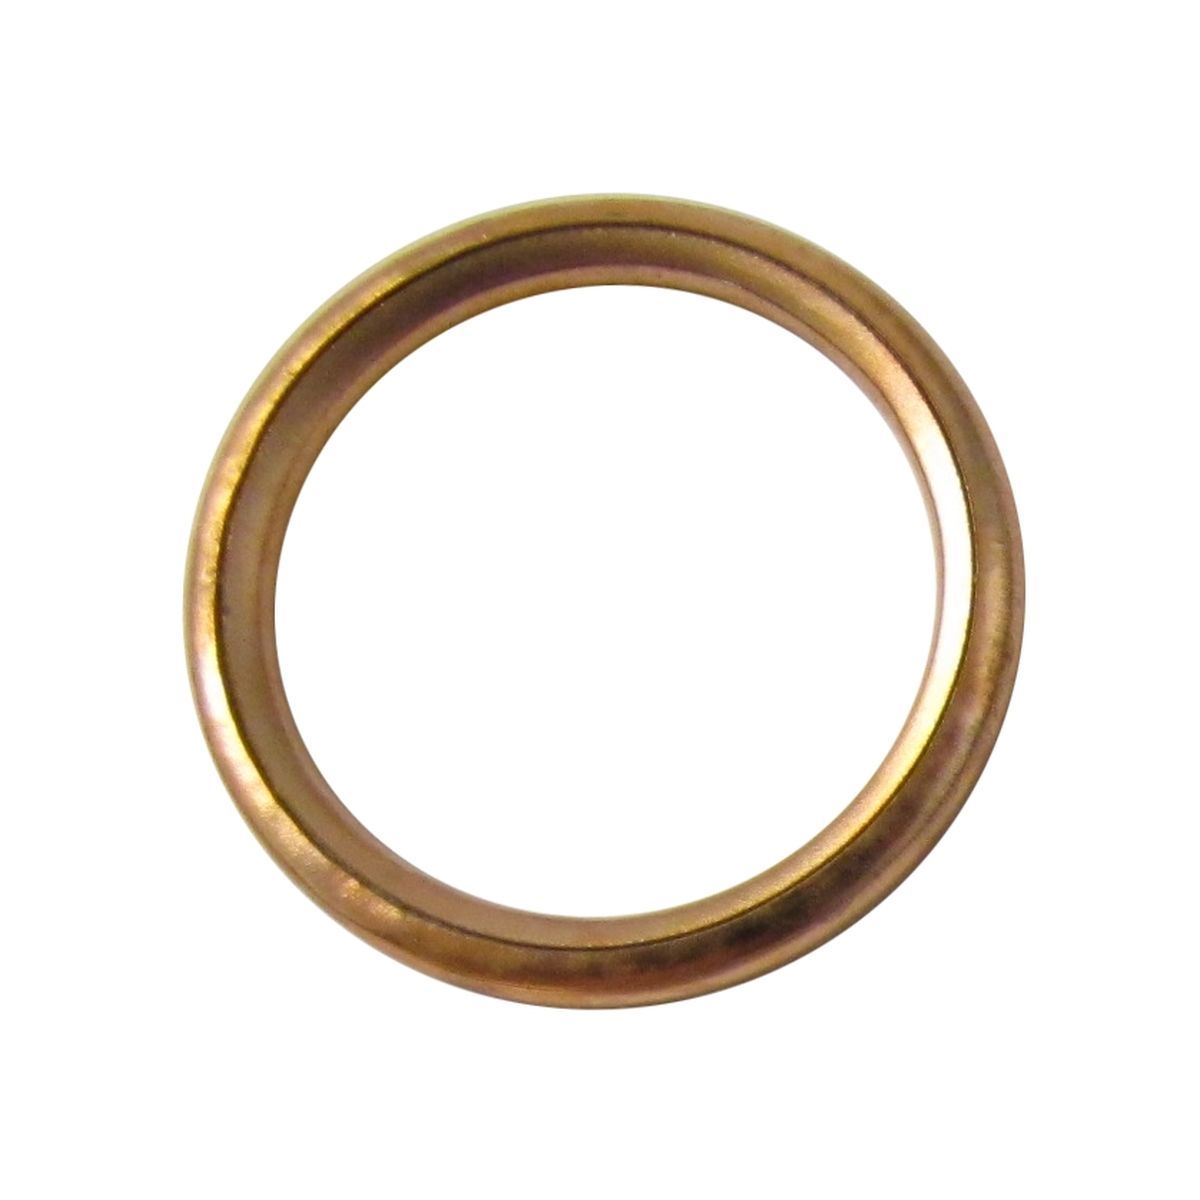 Aw motorcycle parts exhaust gaskets mm copper per